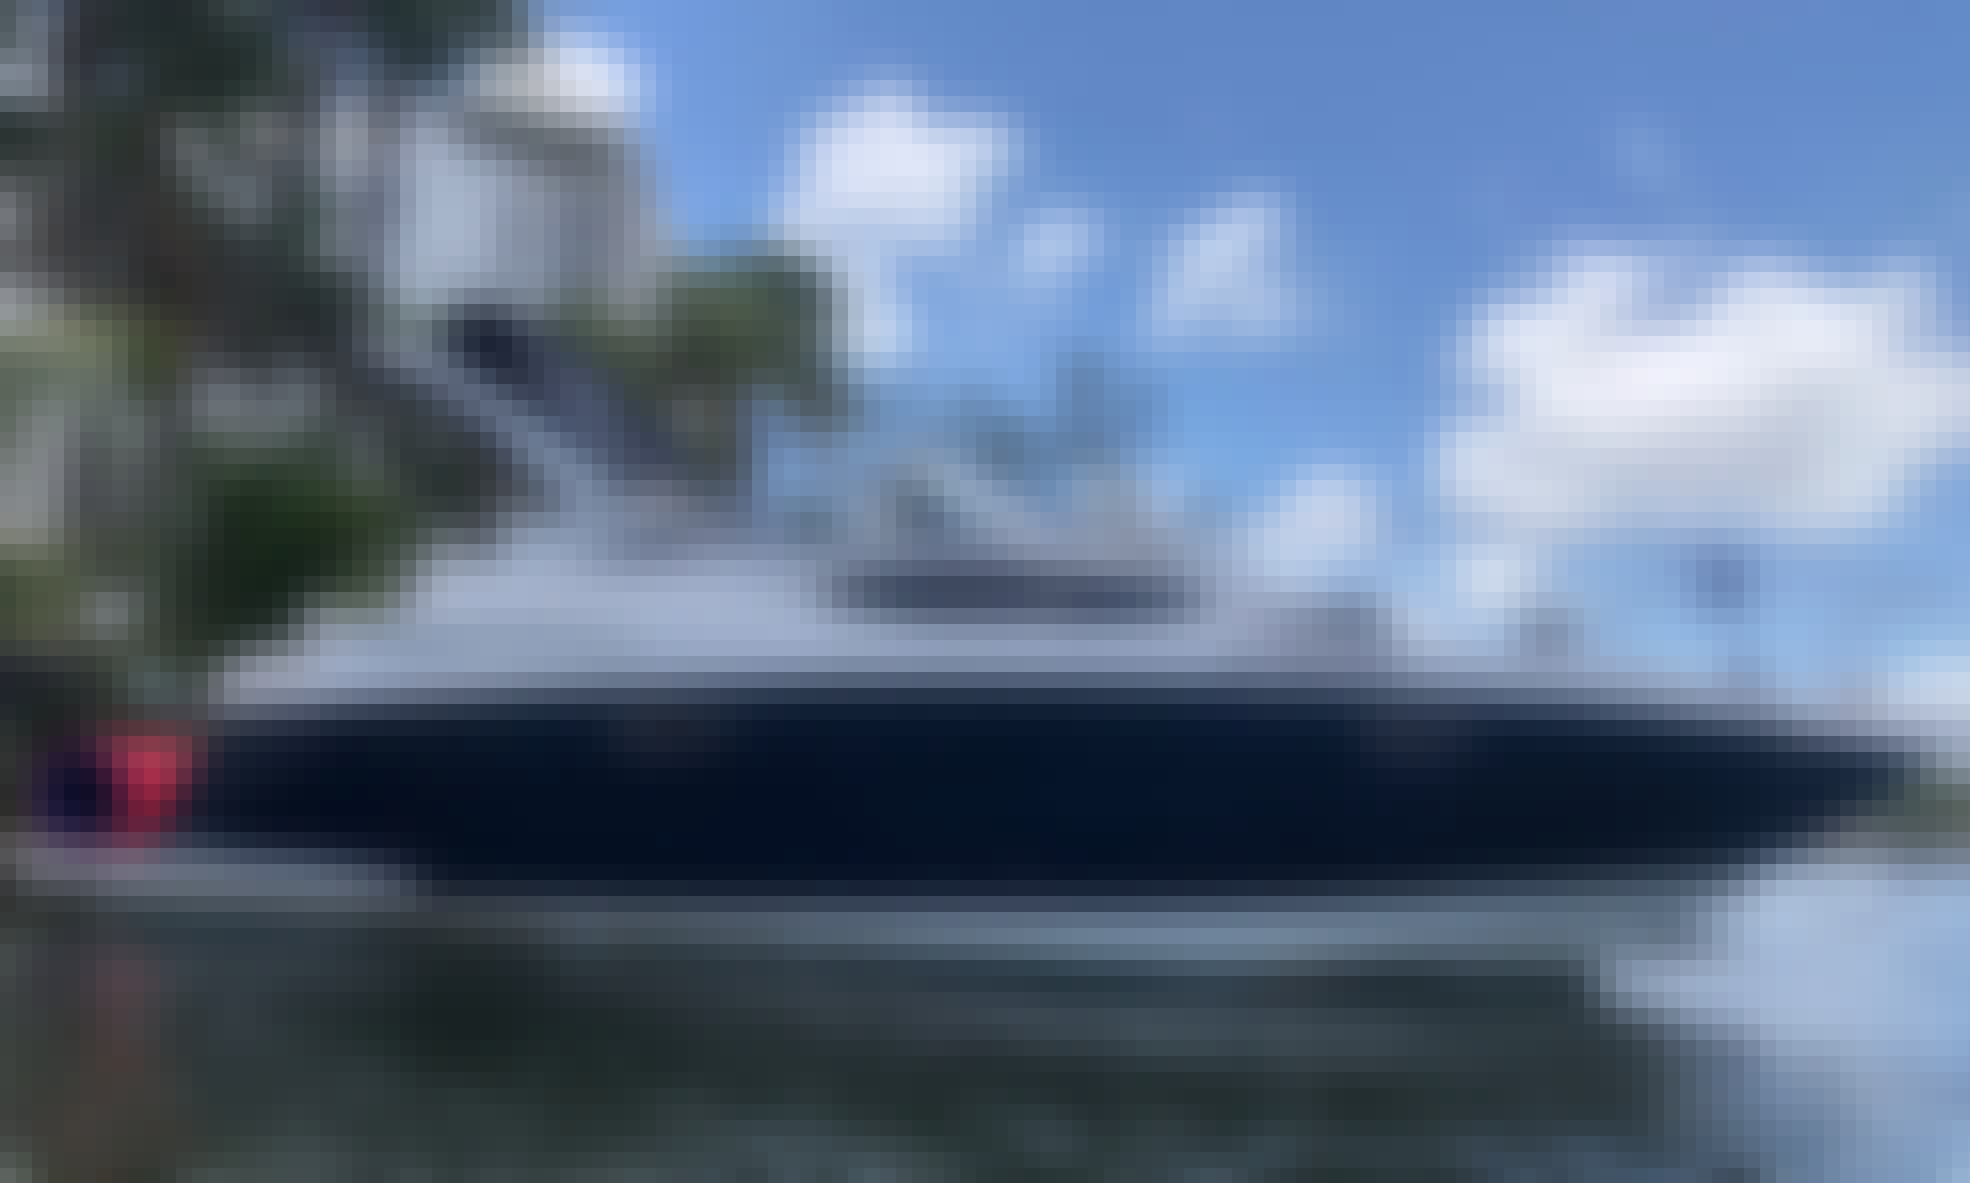 Charter a Regal Window Express 2860 for 7 People in Miami Beach